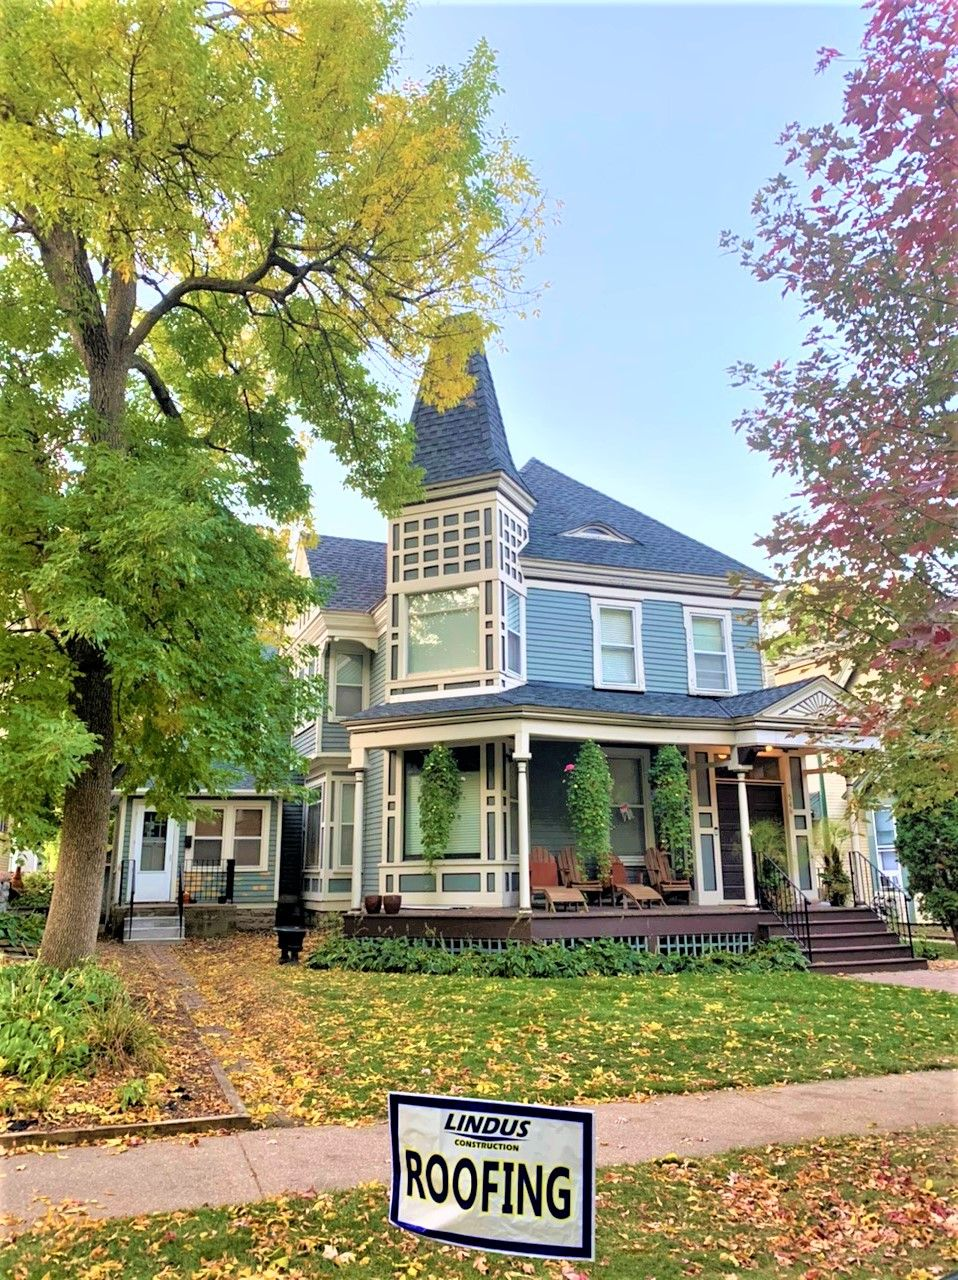 Twin Cities Victorian Home Roofing Project In 2020 Victorian Homes Roofing Roofing Contractors